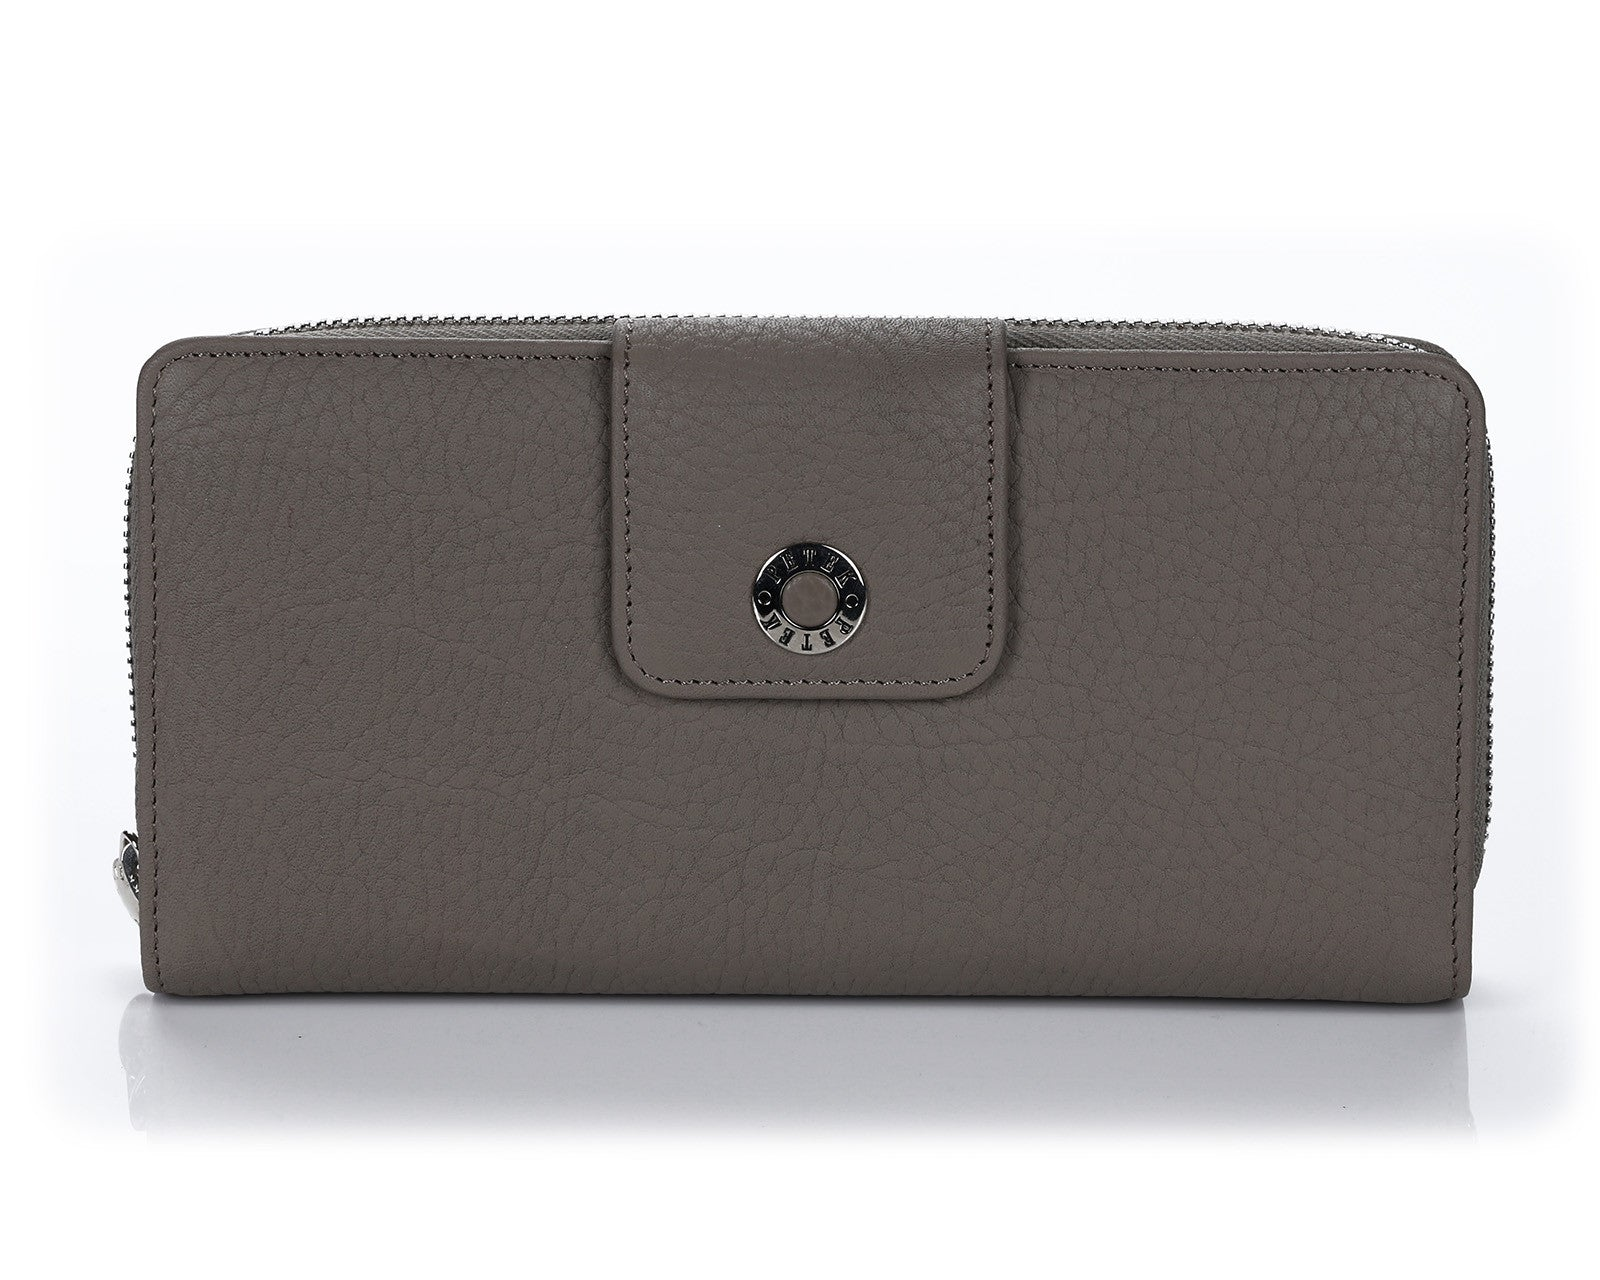 460 Sano  Clutch Wallet, Petek 1855